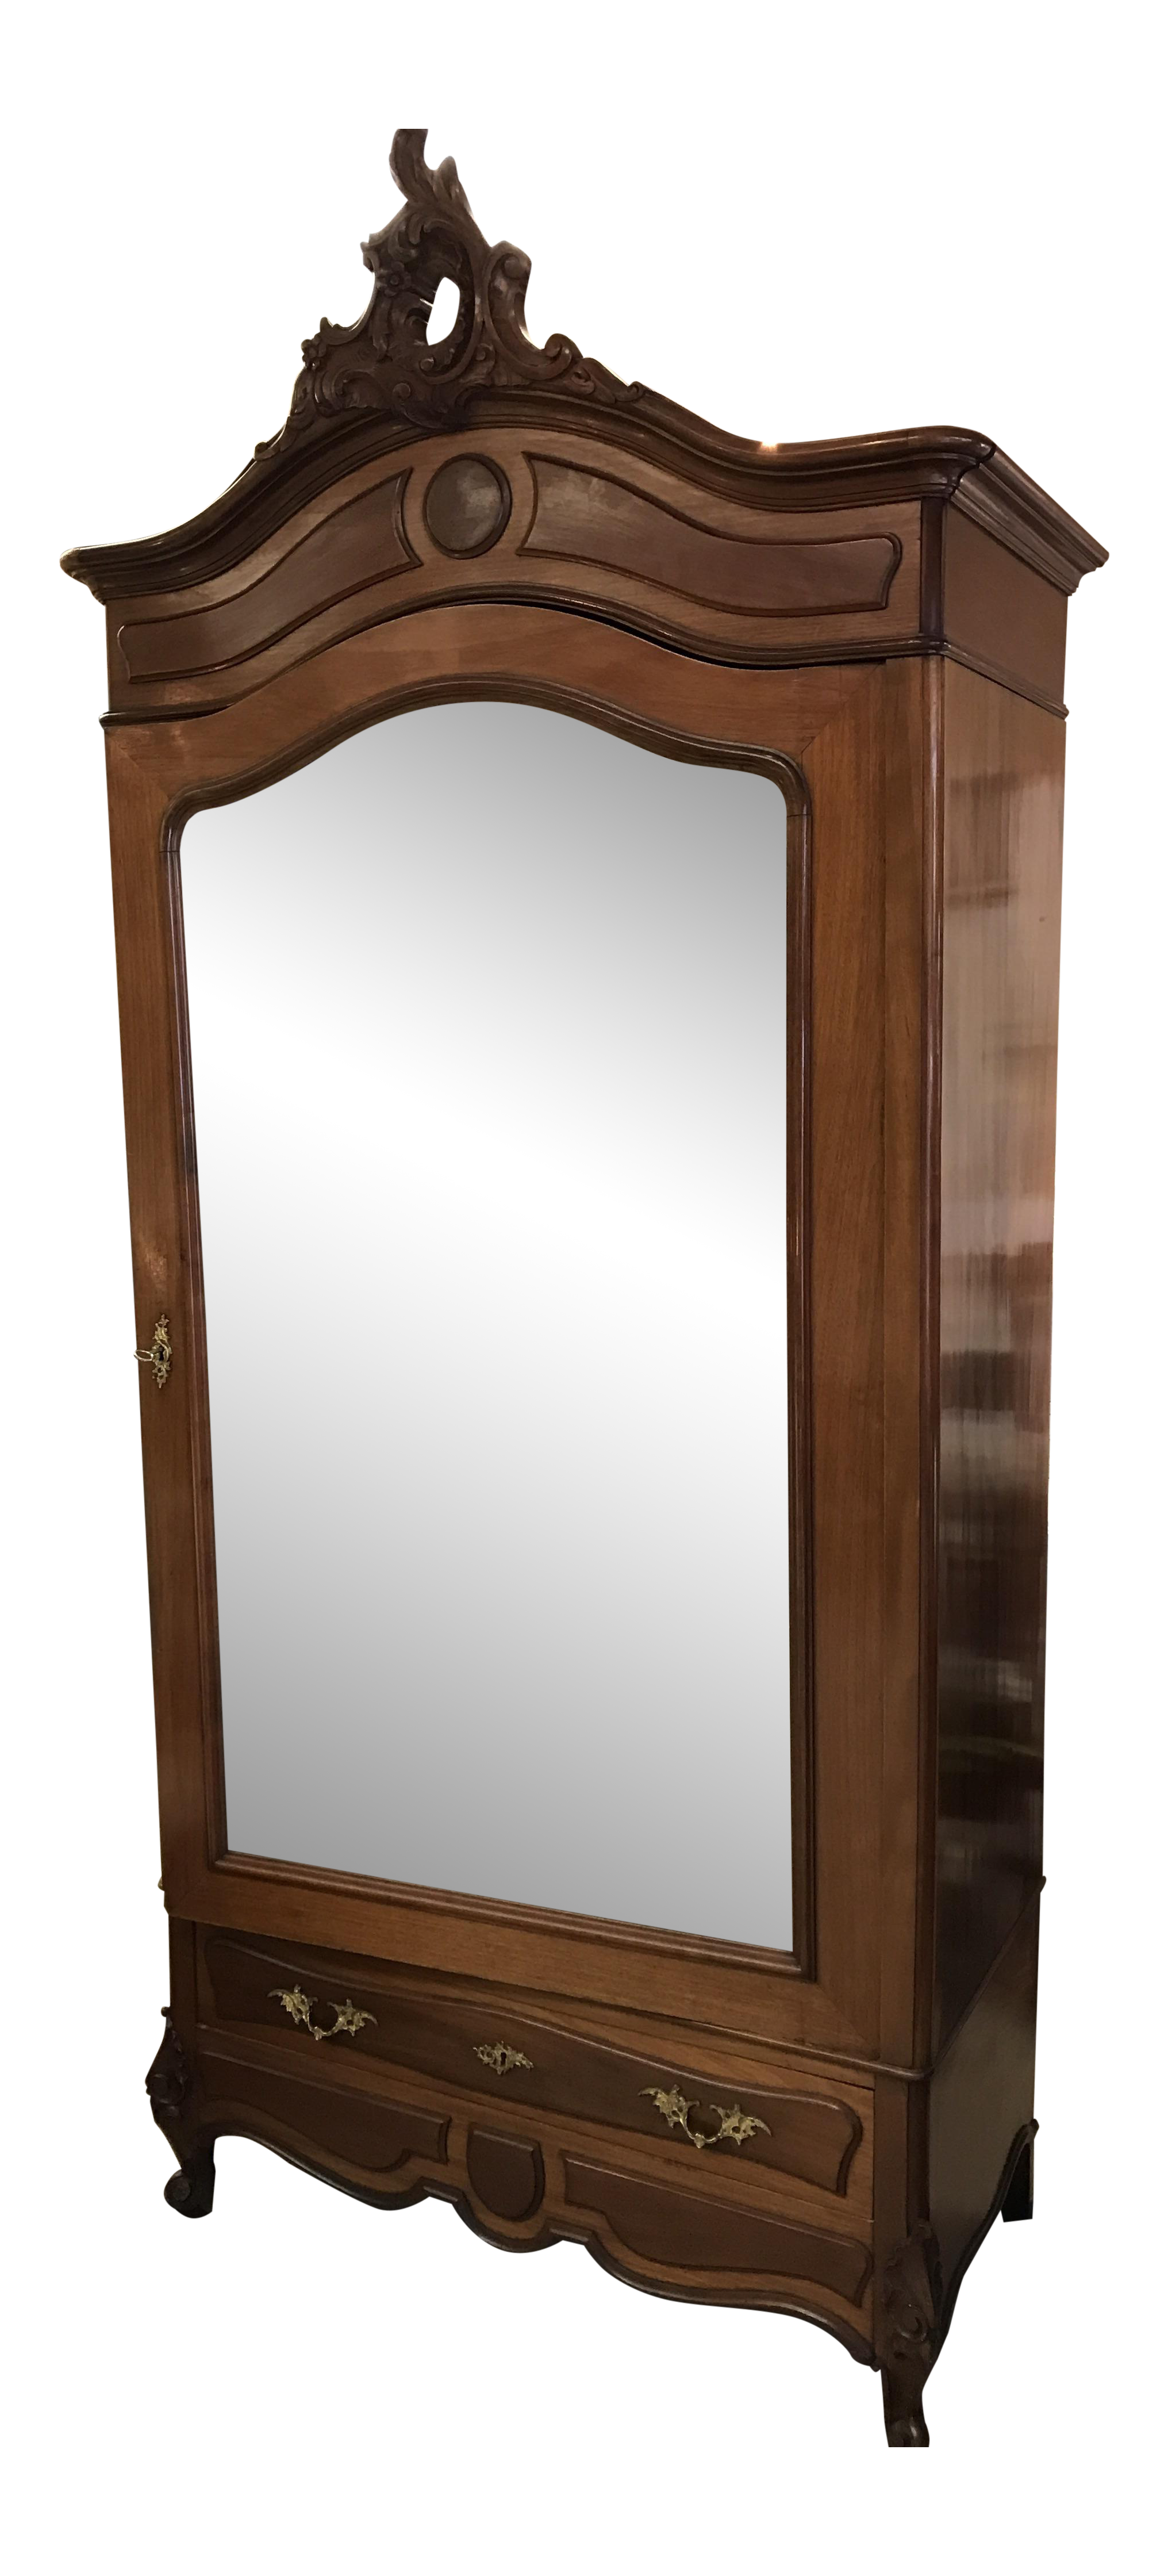 Antique French Wood Armoire on Chairish.com